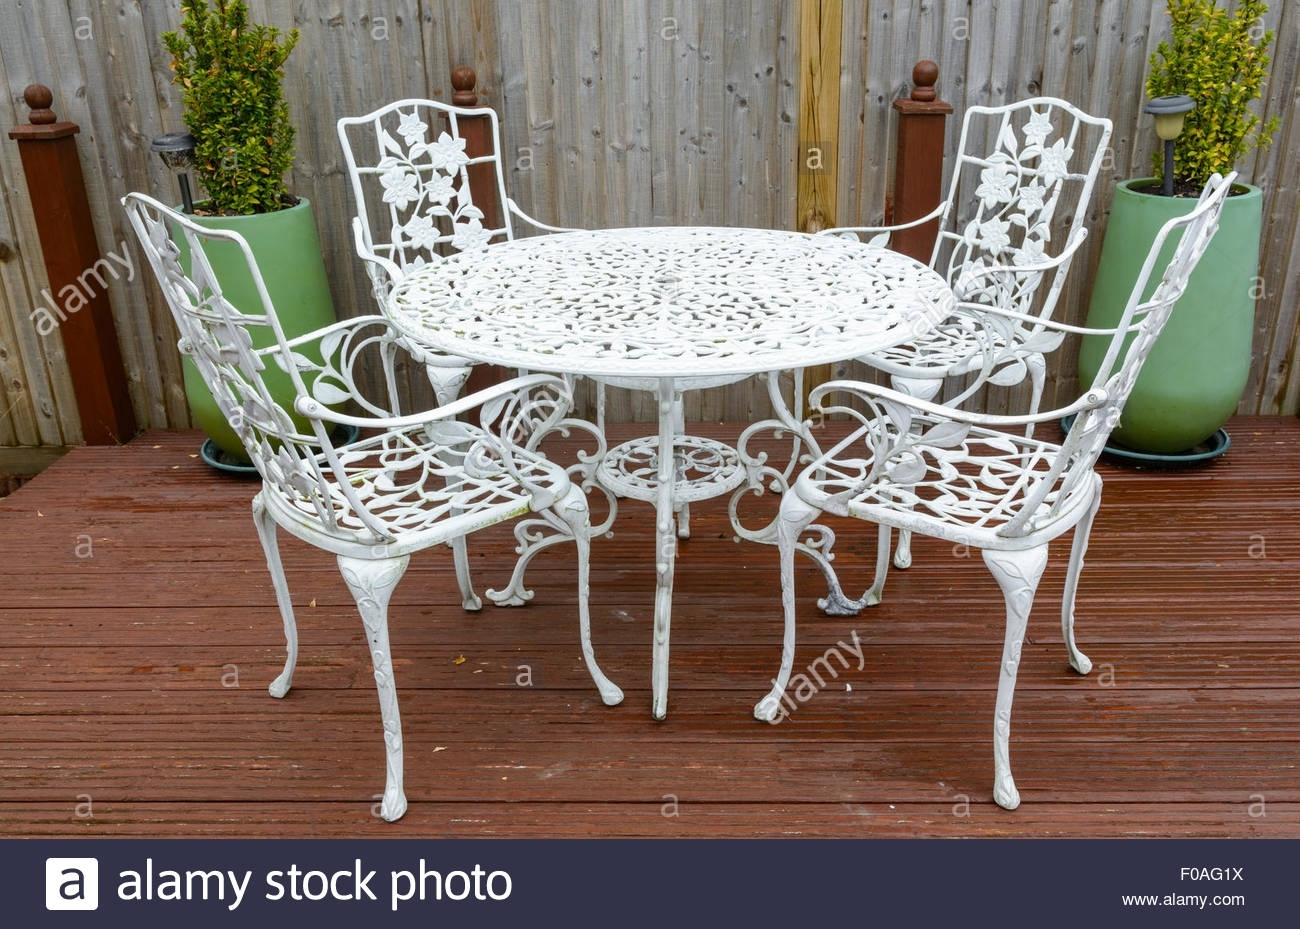 Cast Iron Chairs Stock Photos & Cast Iron Chairs Stock Images – Alamy Throughout Favorite Chapleau Side Chairs (View 2 of 20)